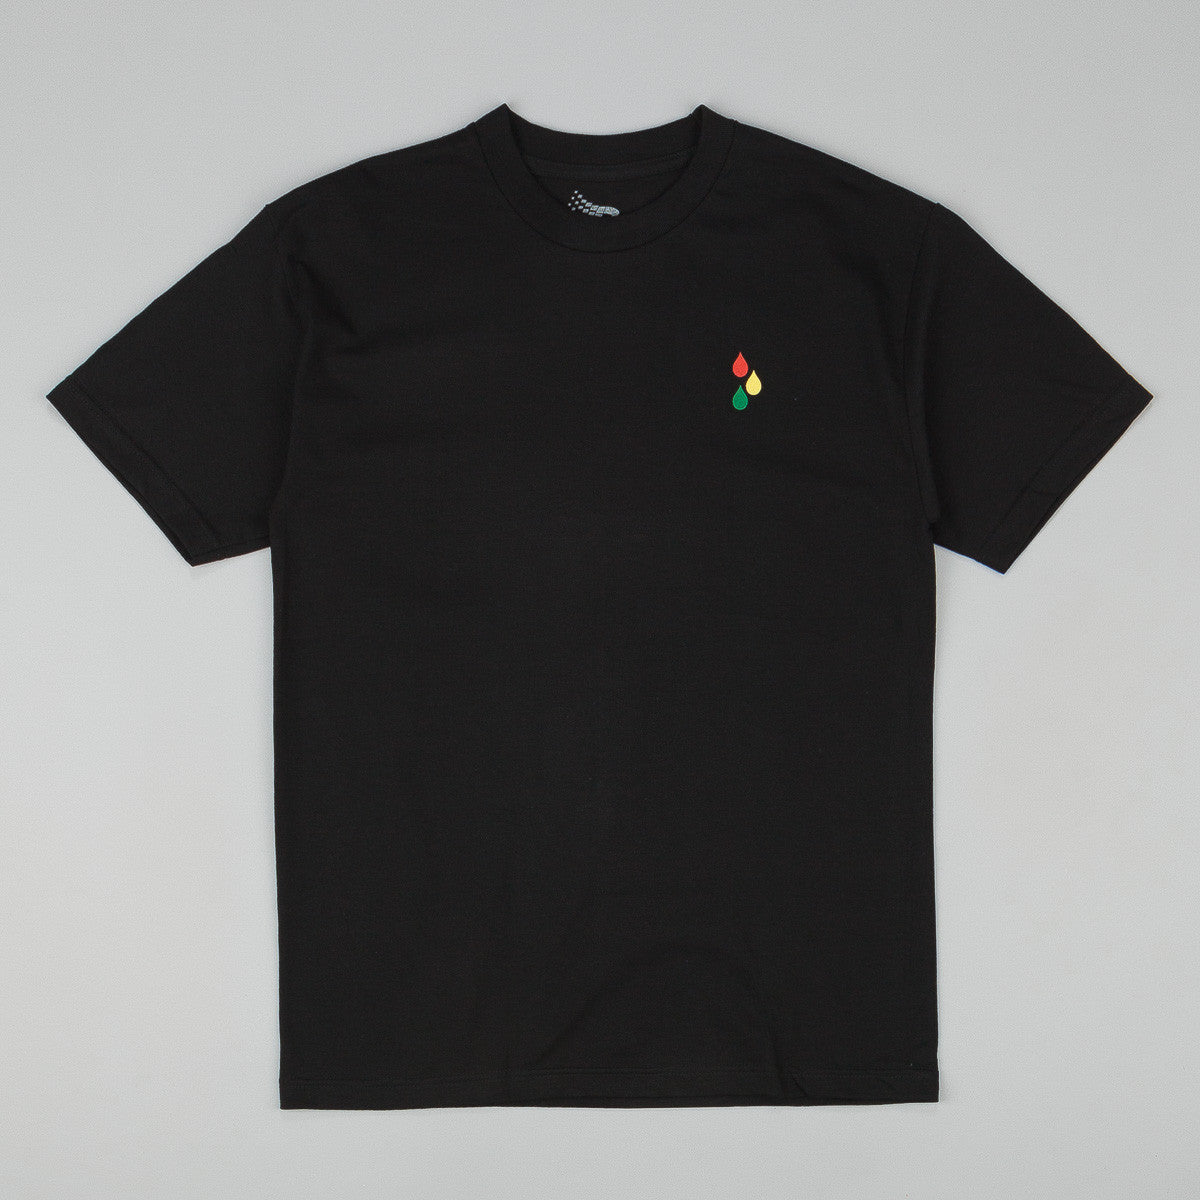 Bronze 56k Teardrop T-Shirt - (Rasta) Black